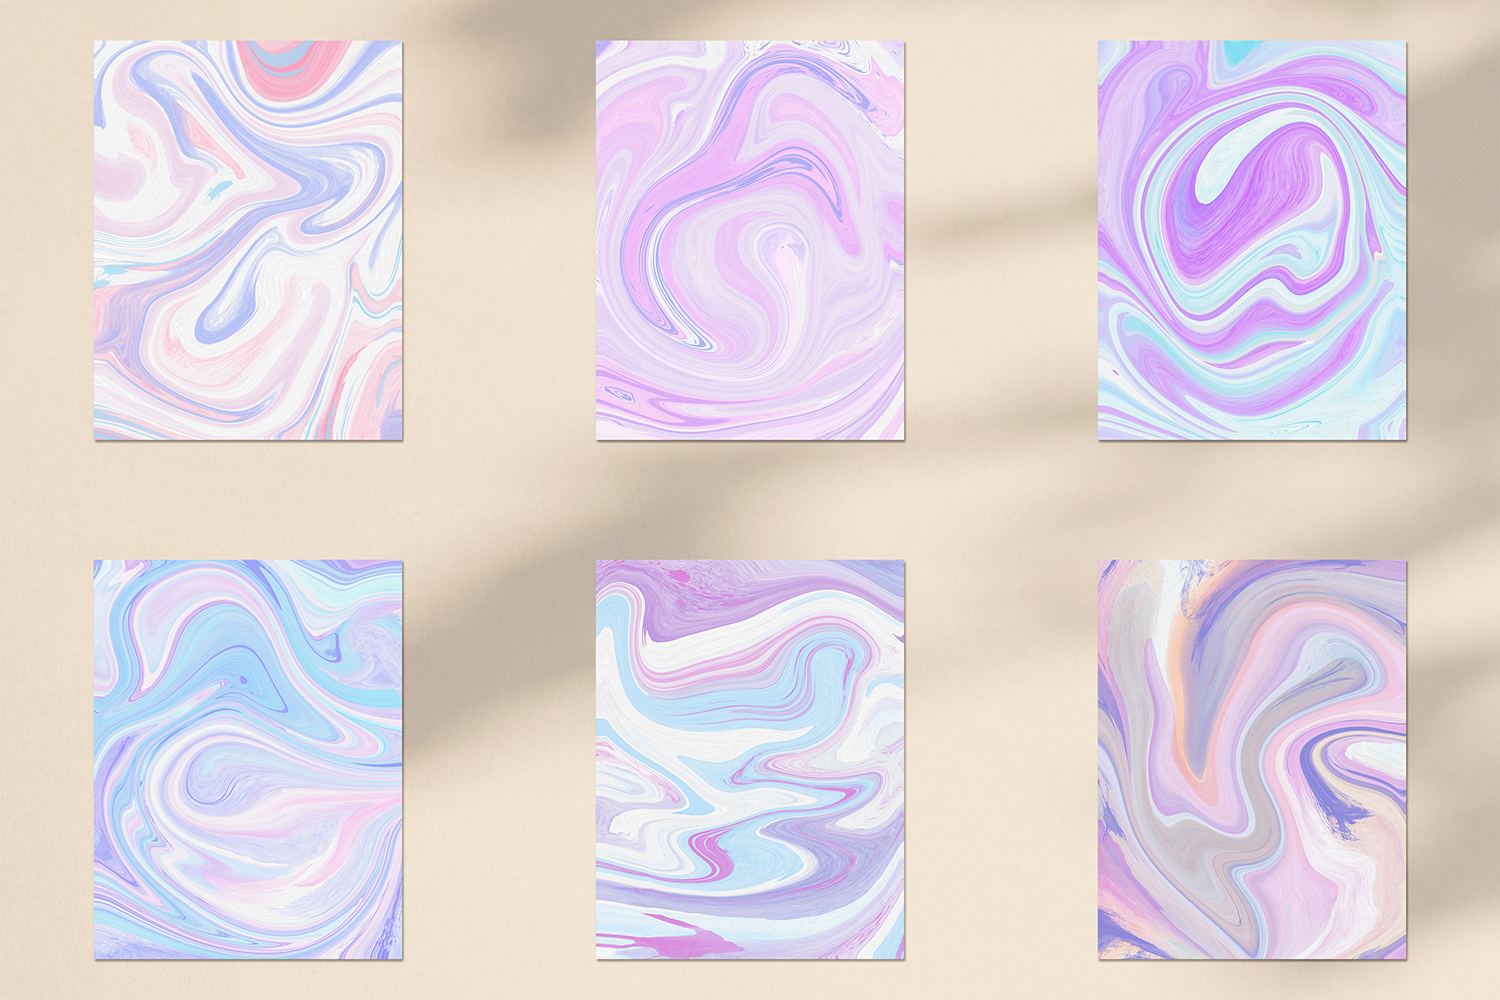 Agate Textures - Wedding Backgrounds example image 2